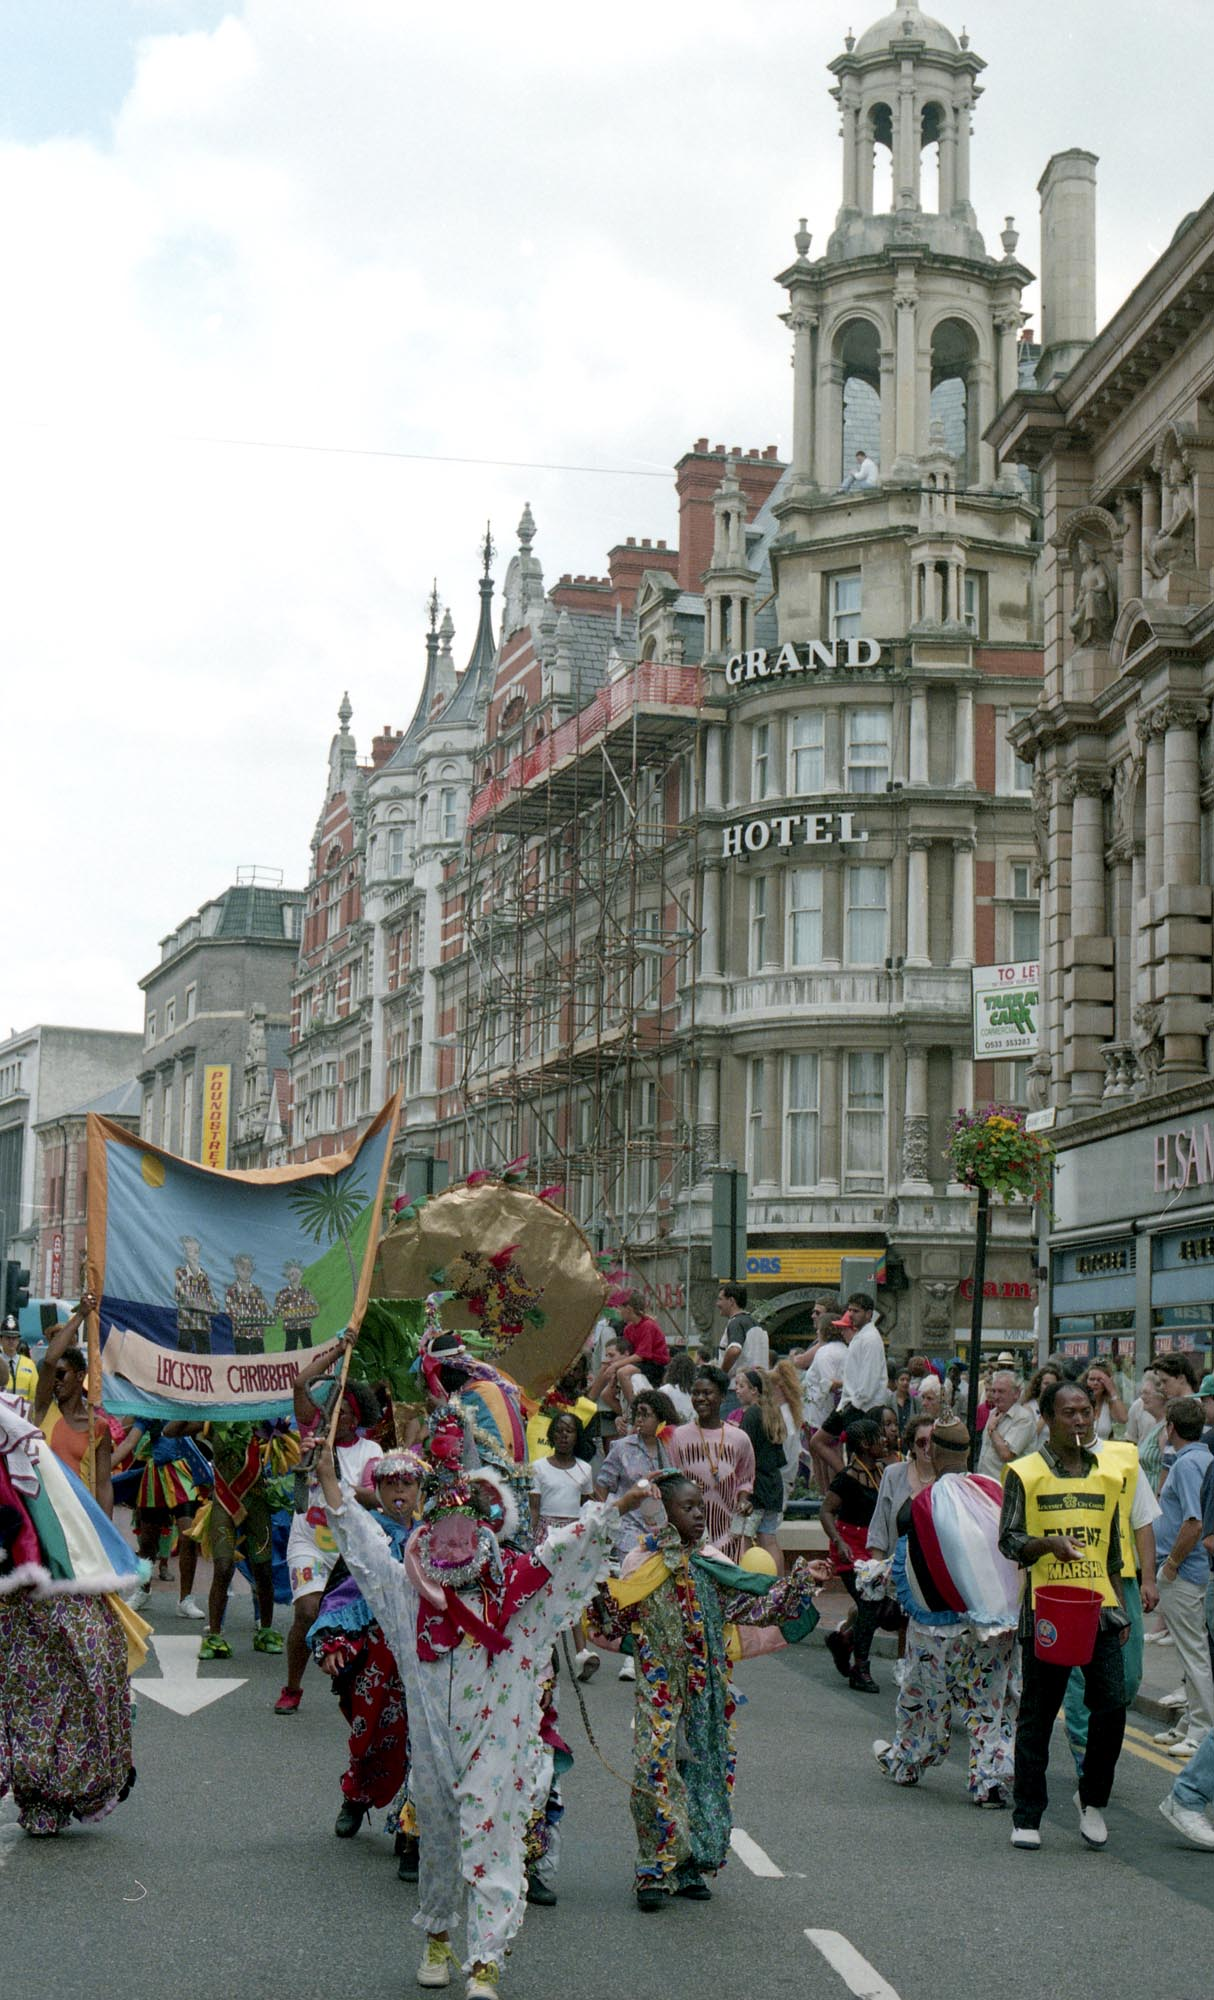 Many roads are closed for the Carnival Parade, seen here on Granby Street in 1992 -